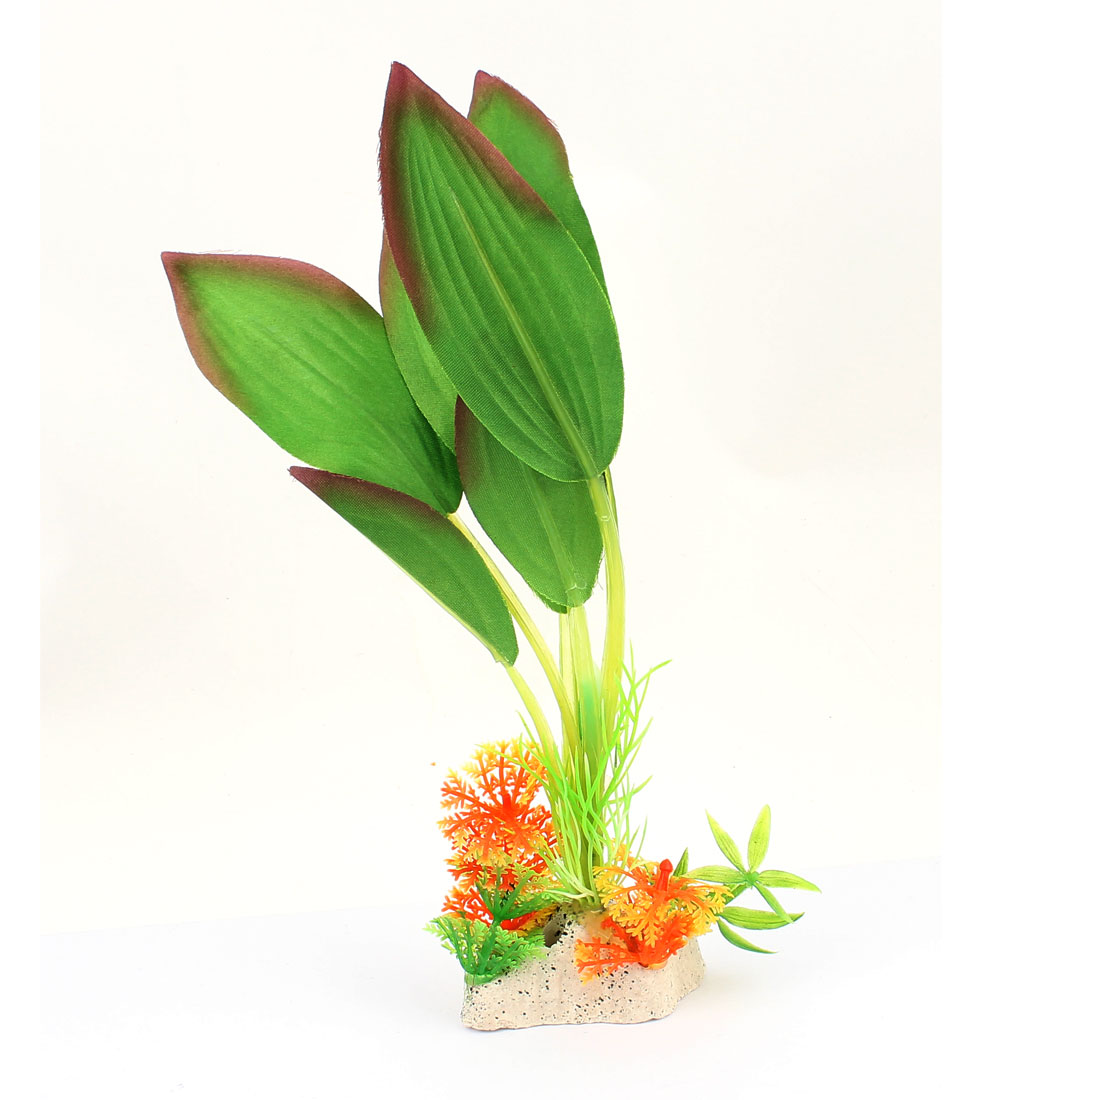 22cm Height Green Plastic Ceramic Base Aquarium Plant Underwater Grass Decor for Fishbowl Fish Tank